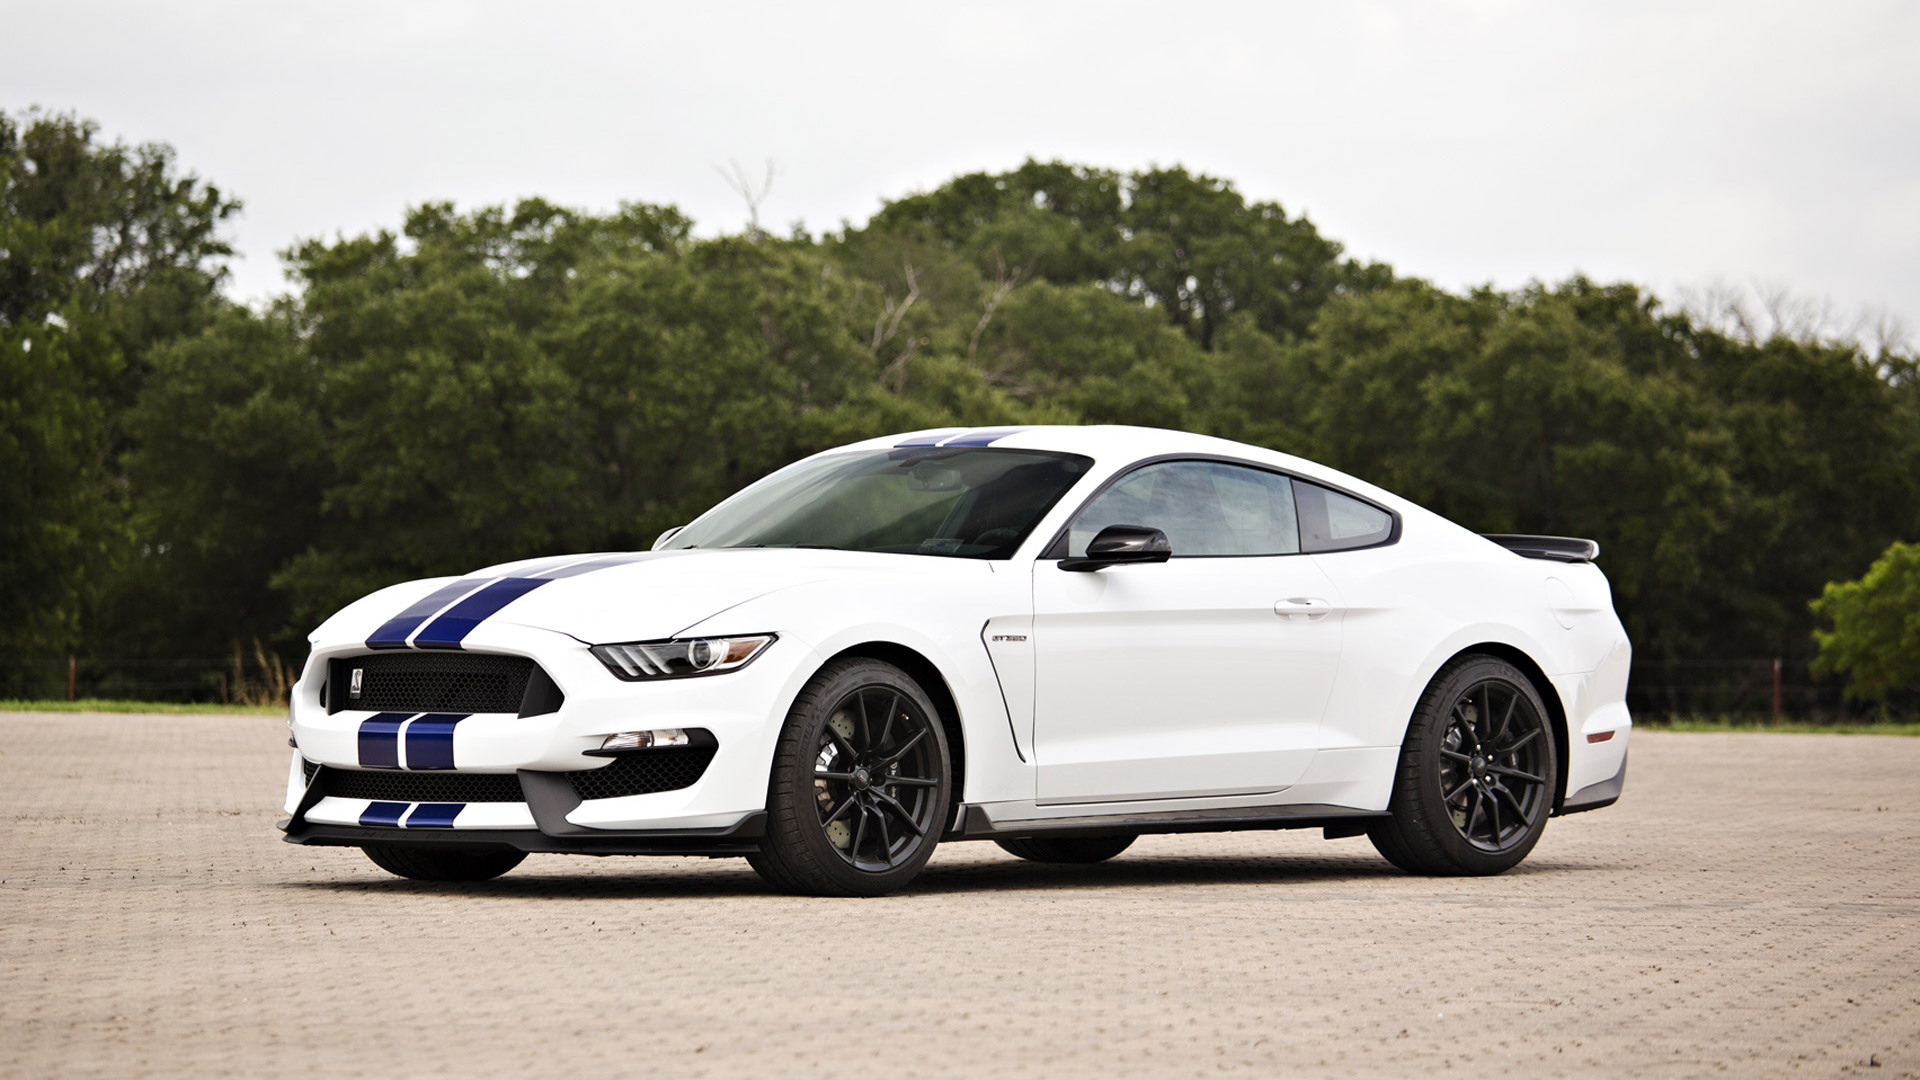 2016 Ford Mustang Shelby GT350 signed by George W. Bush